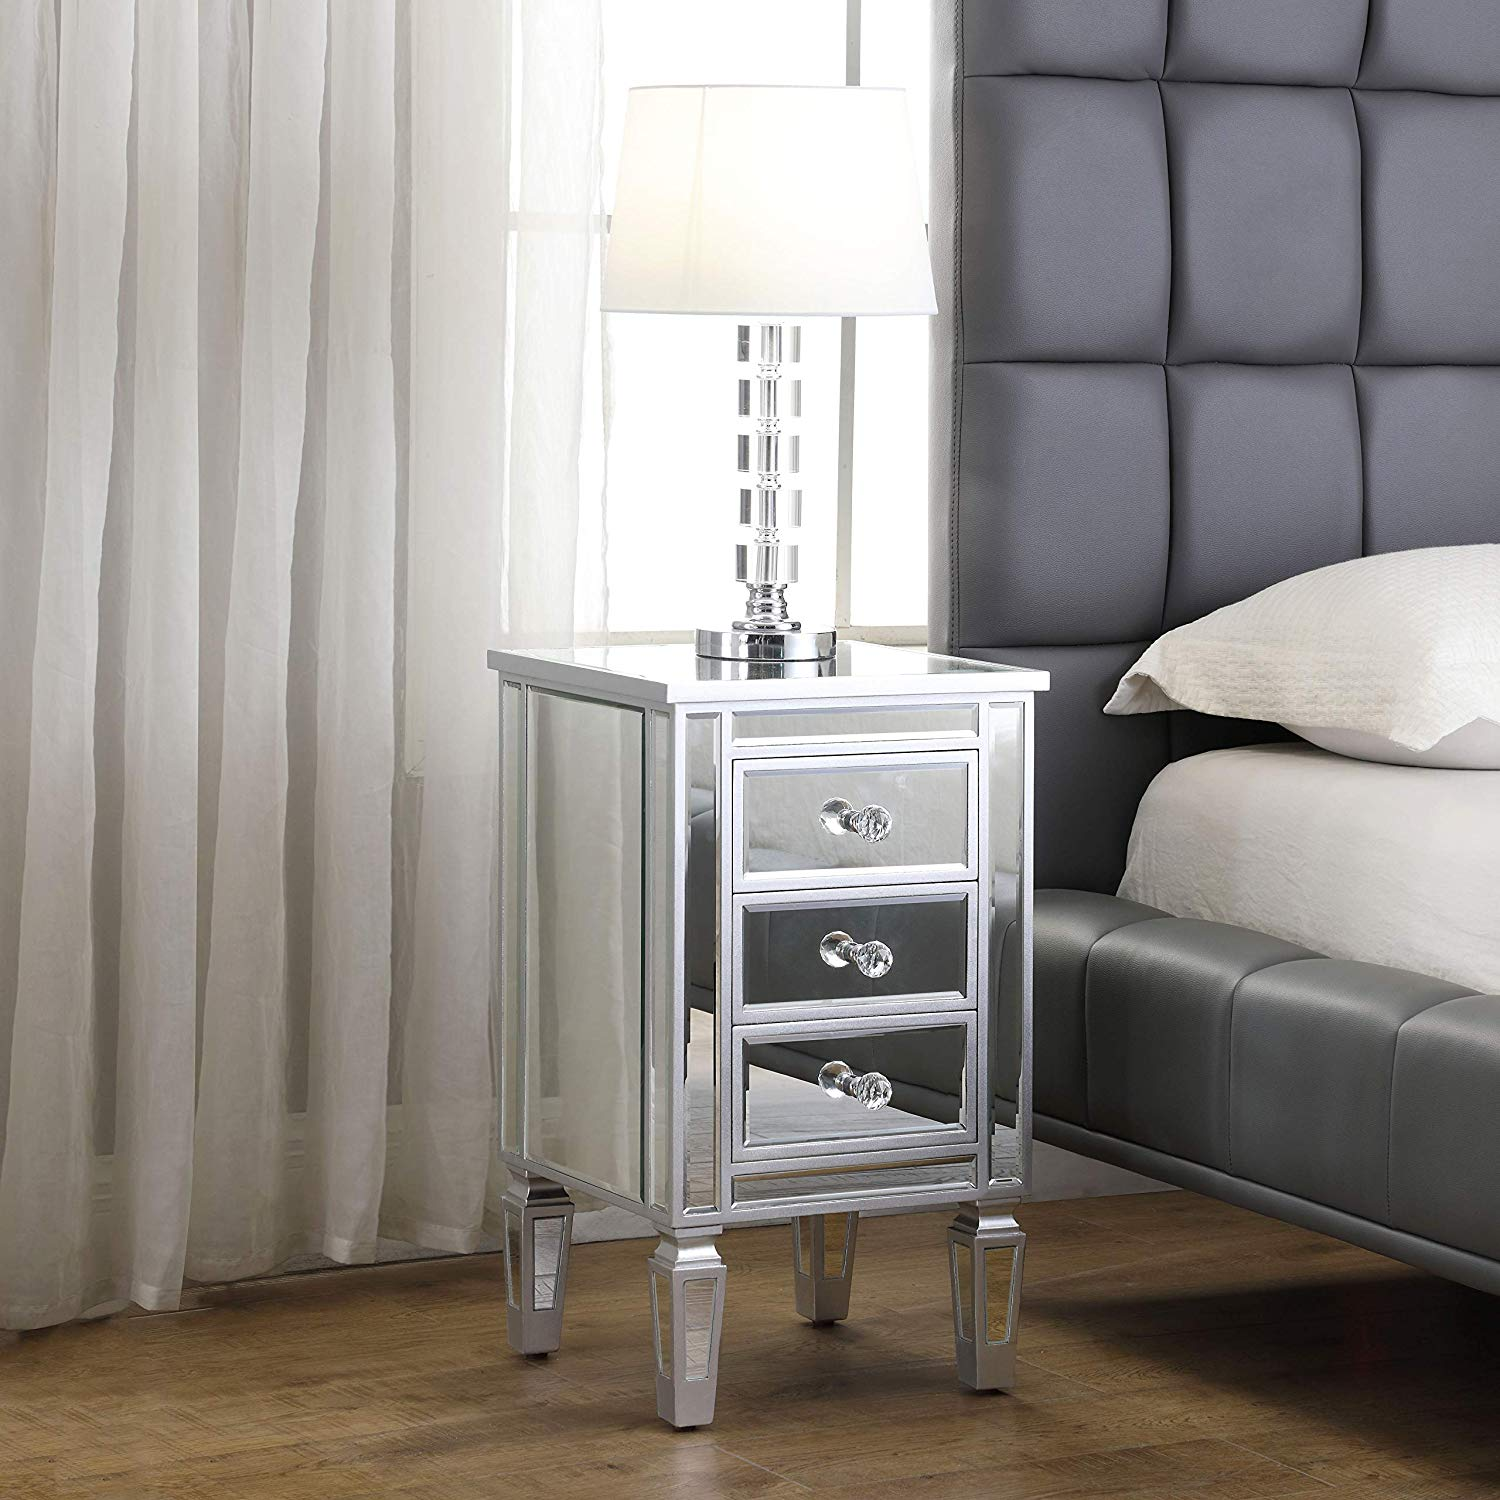 3 Drawer Mirrored End Table Mirrored Nightstand Glass